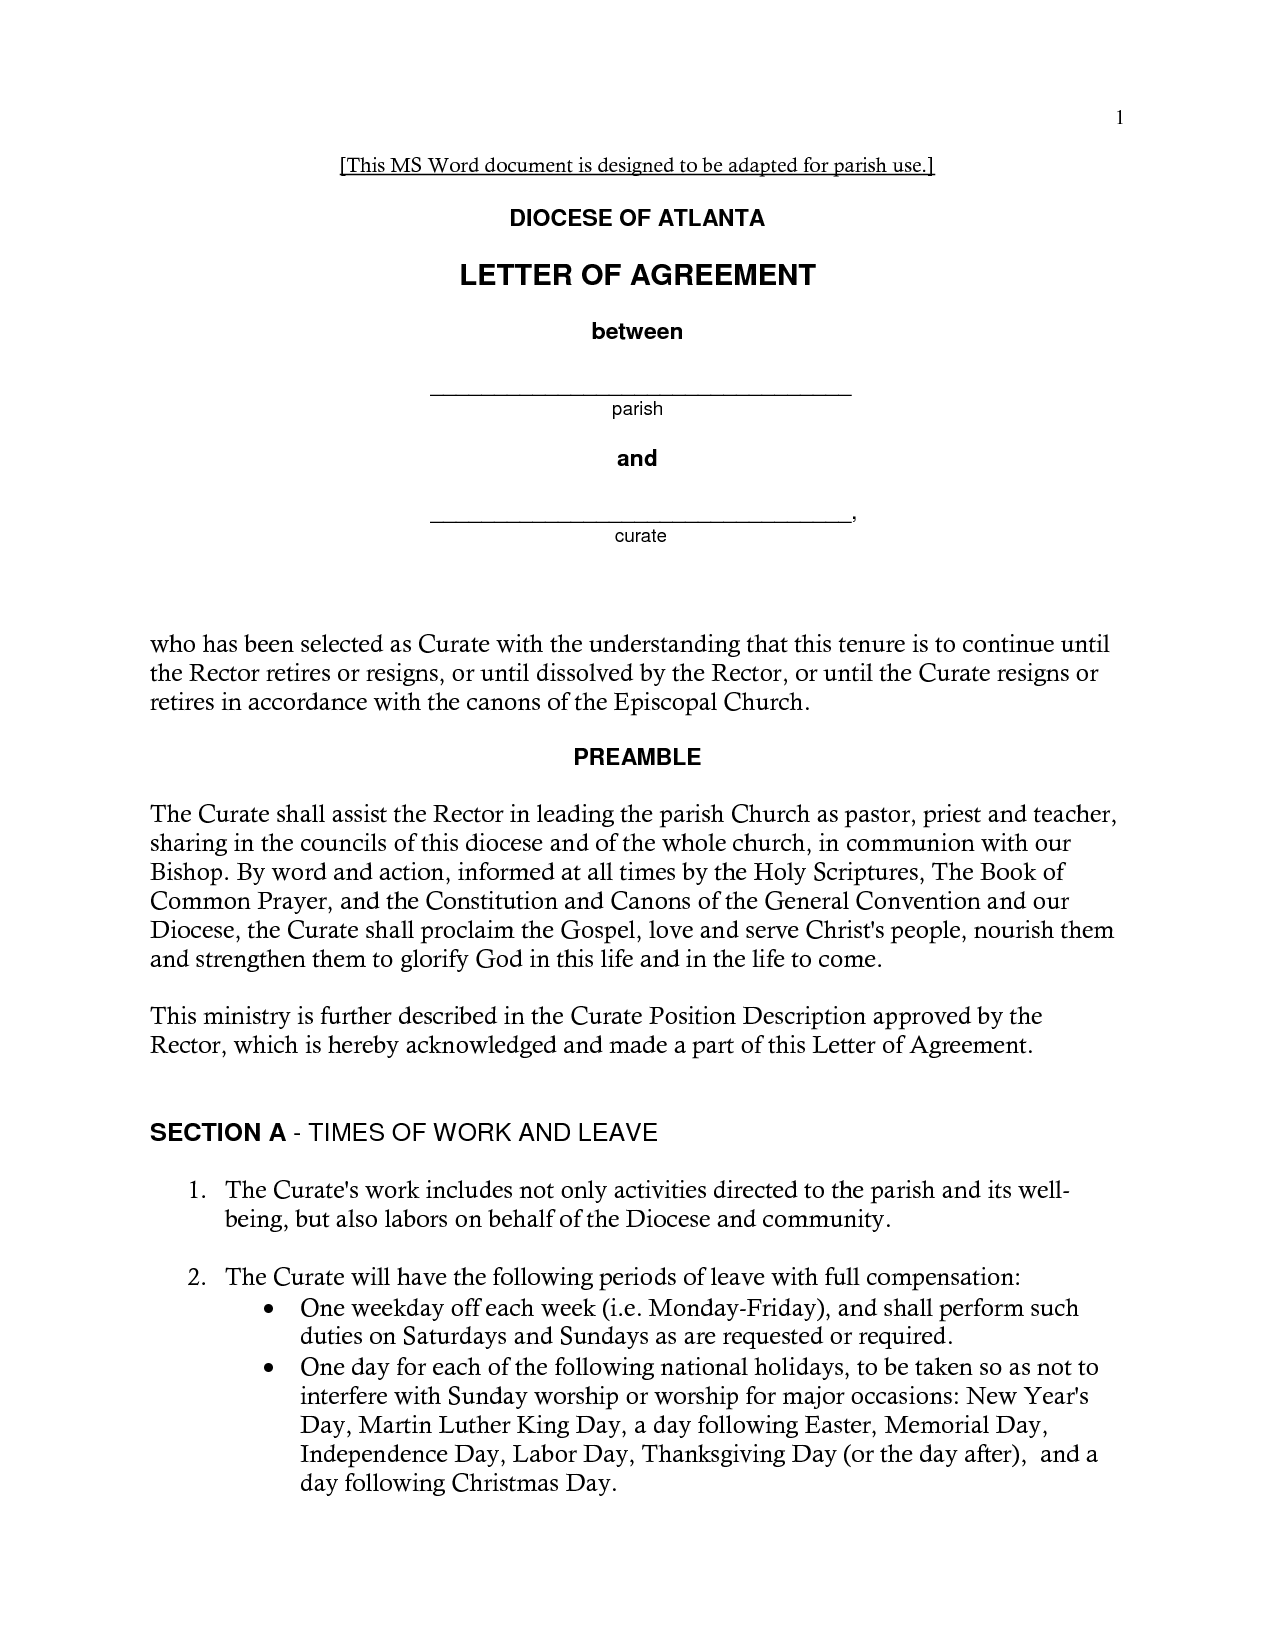 Free Printable Letter of Agreement Form (GENERIC) Letter